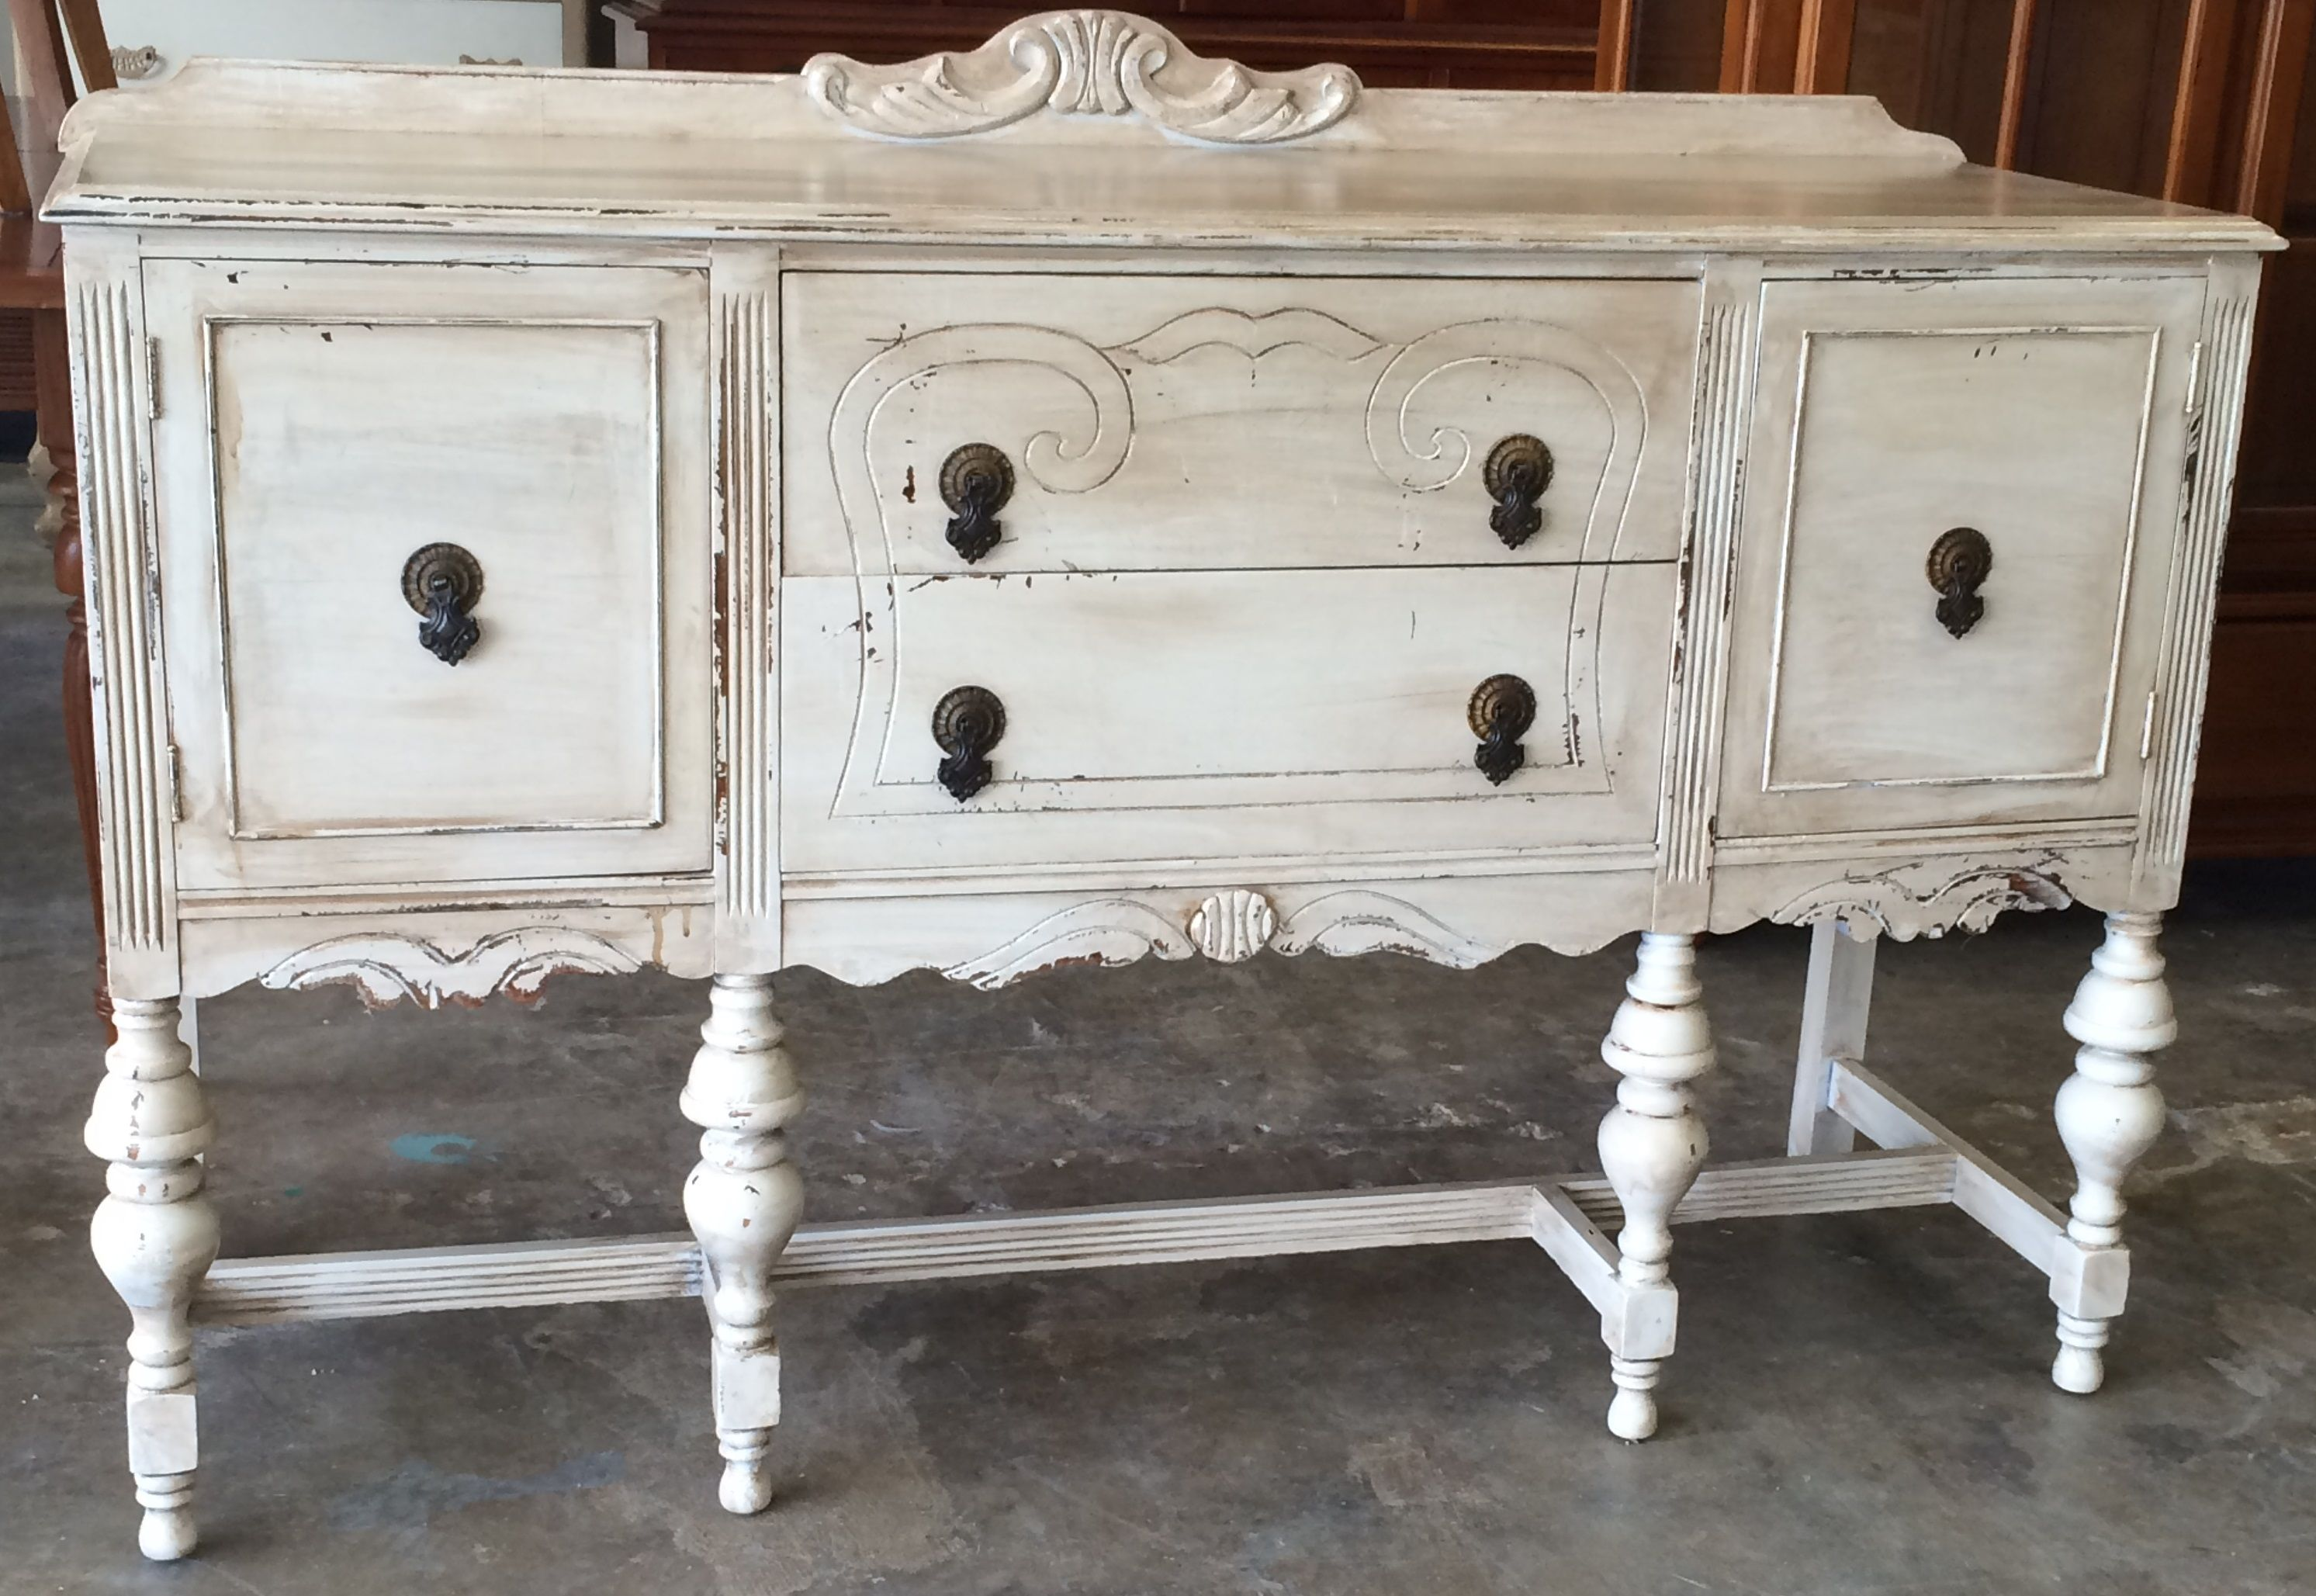 Pin By Kaylene Thompson On Painted Furniture Images In